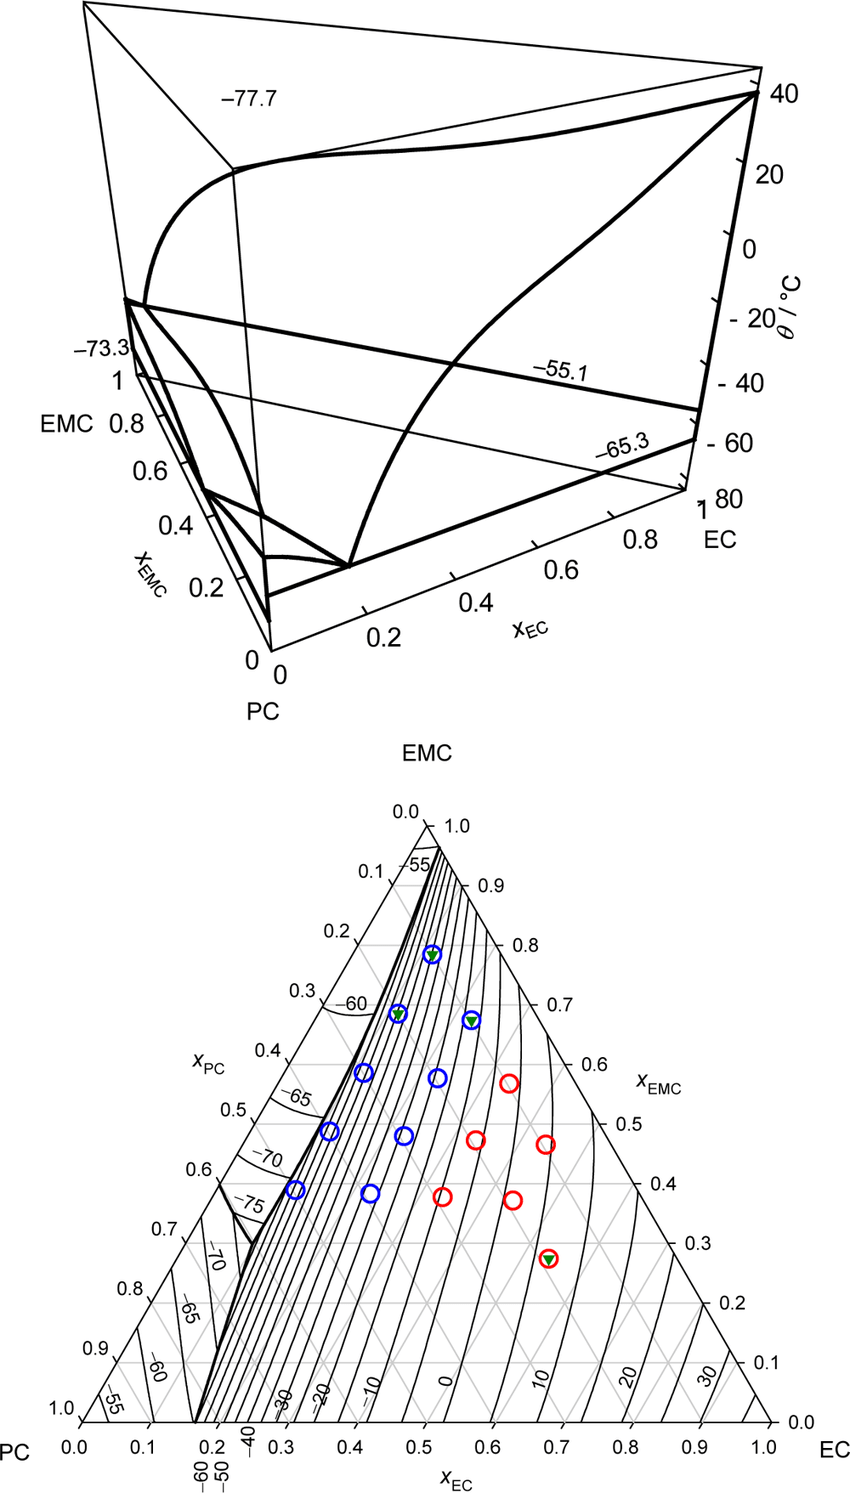 medium resolution of ternary phase diagram of ec pc emc in the form of a liquid